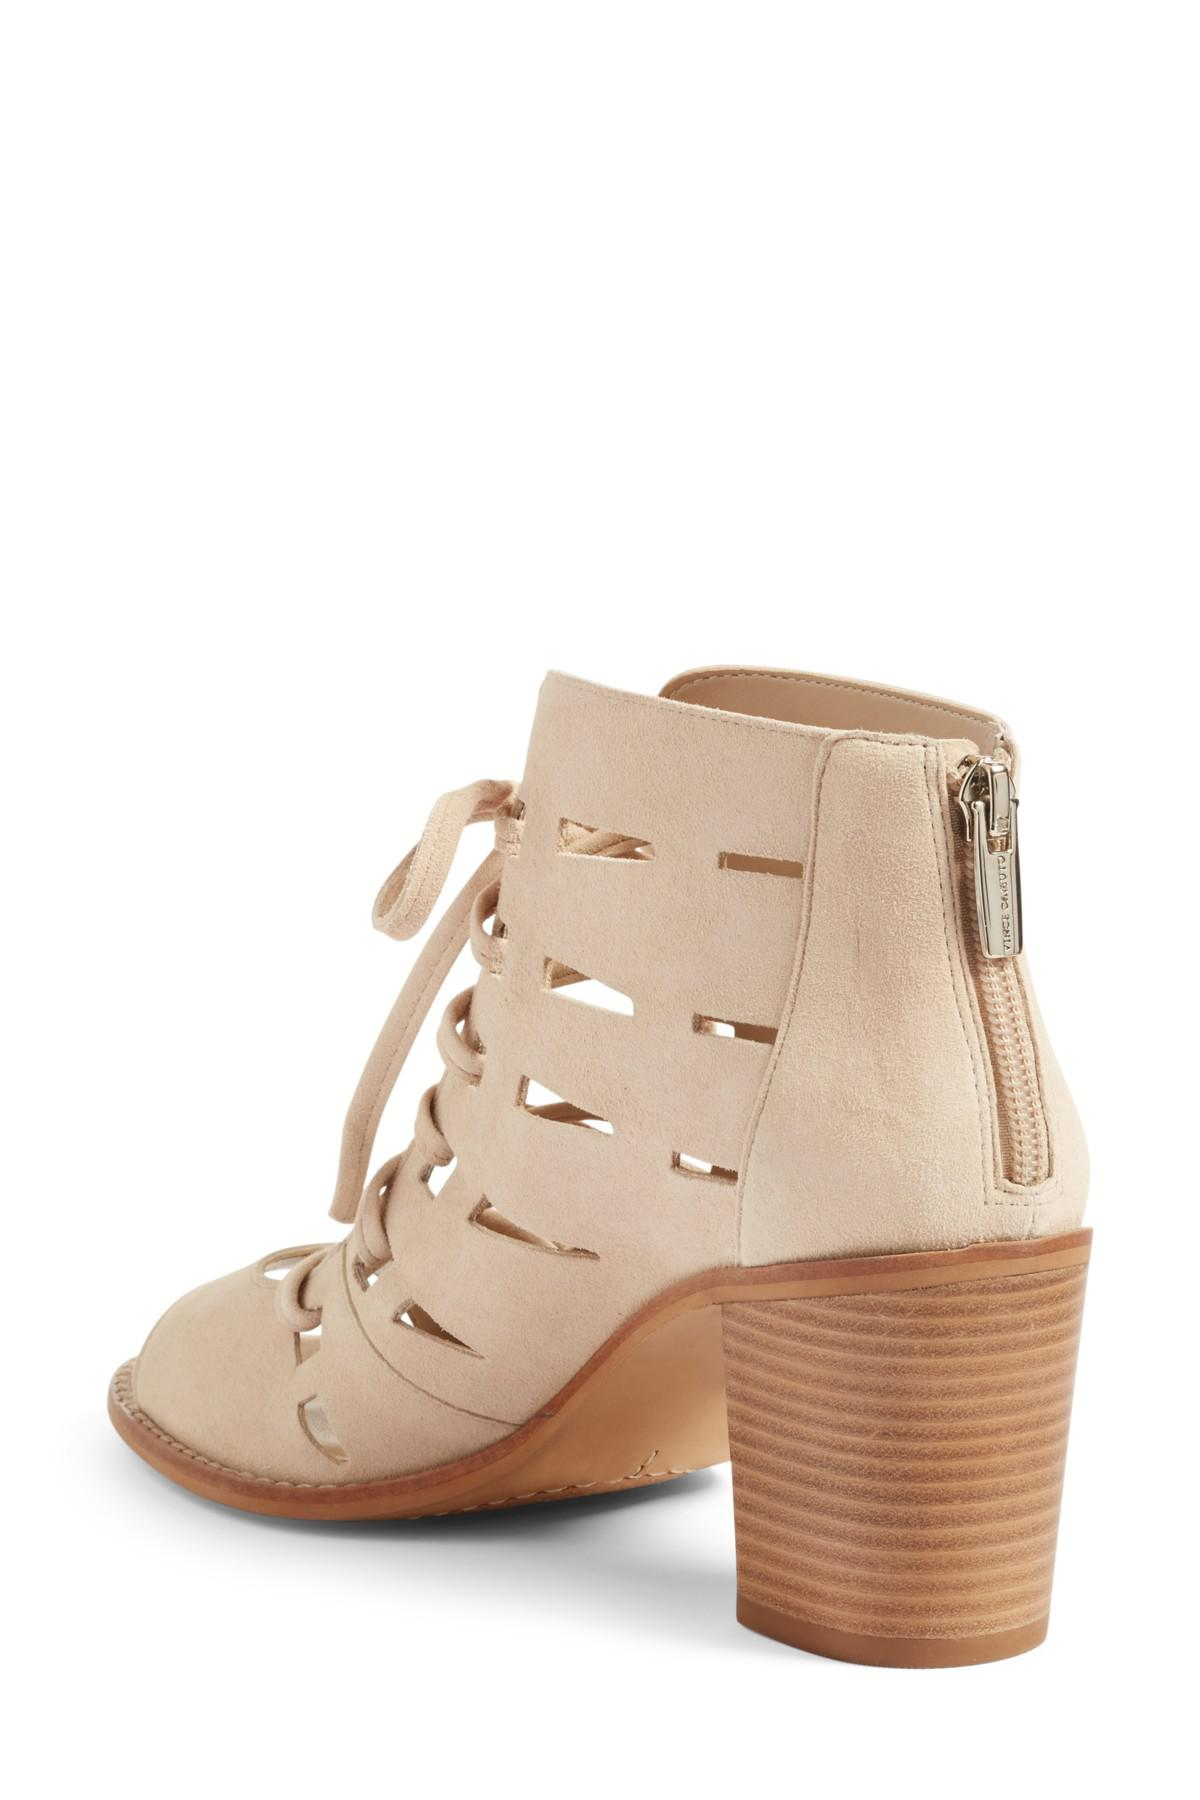 822af678efdc Lyst - Vince Camuto Tressa Perforated Lace-up Sandal in Natural